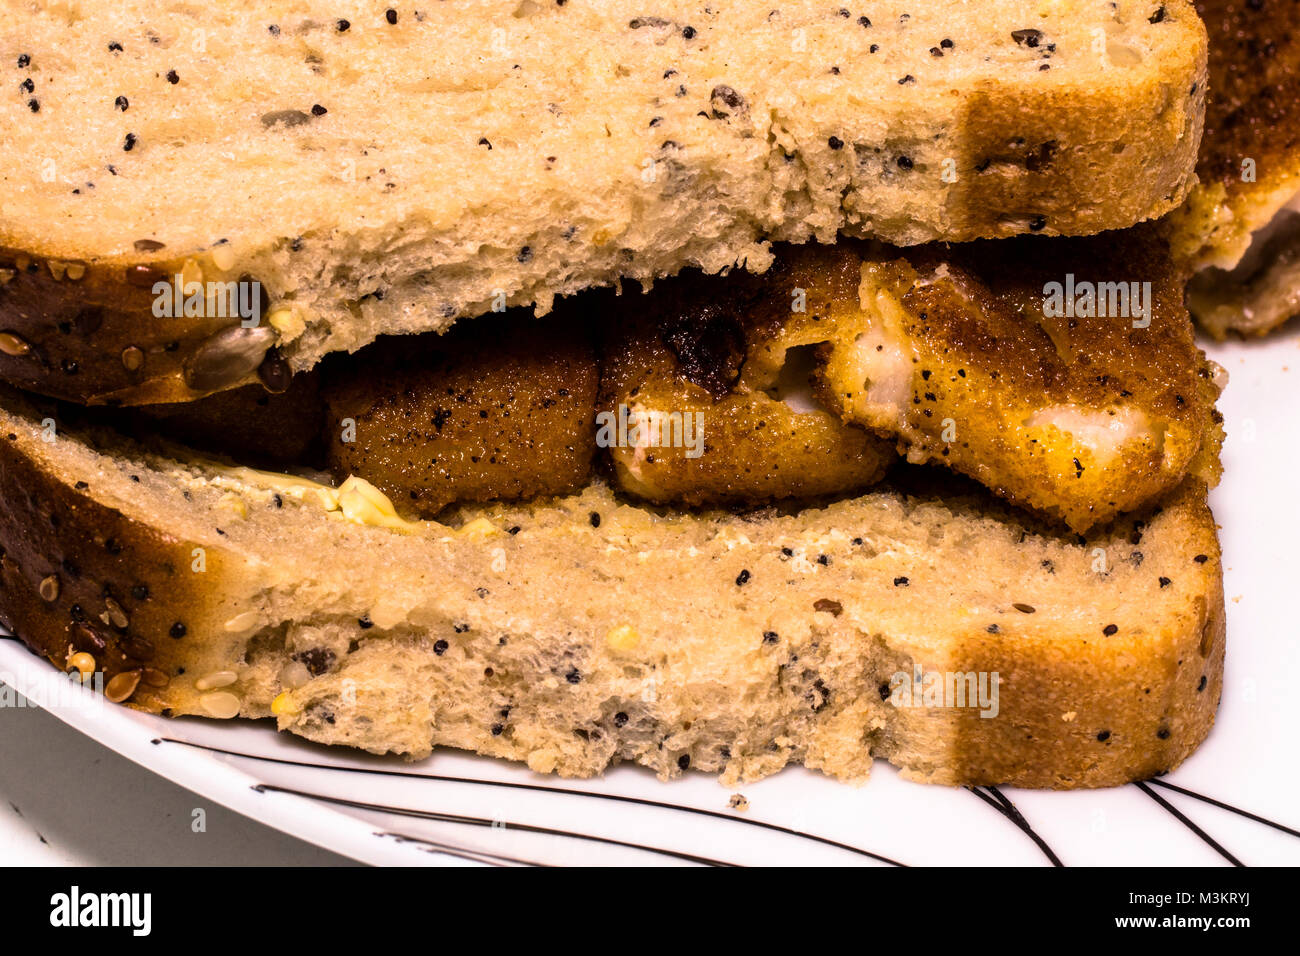 A fish finger sandwich. - Stock Image